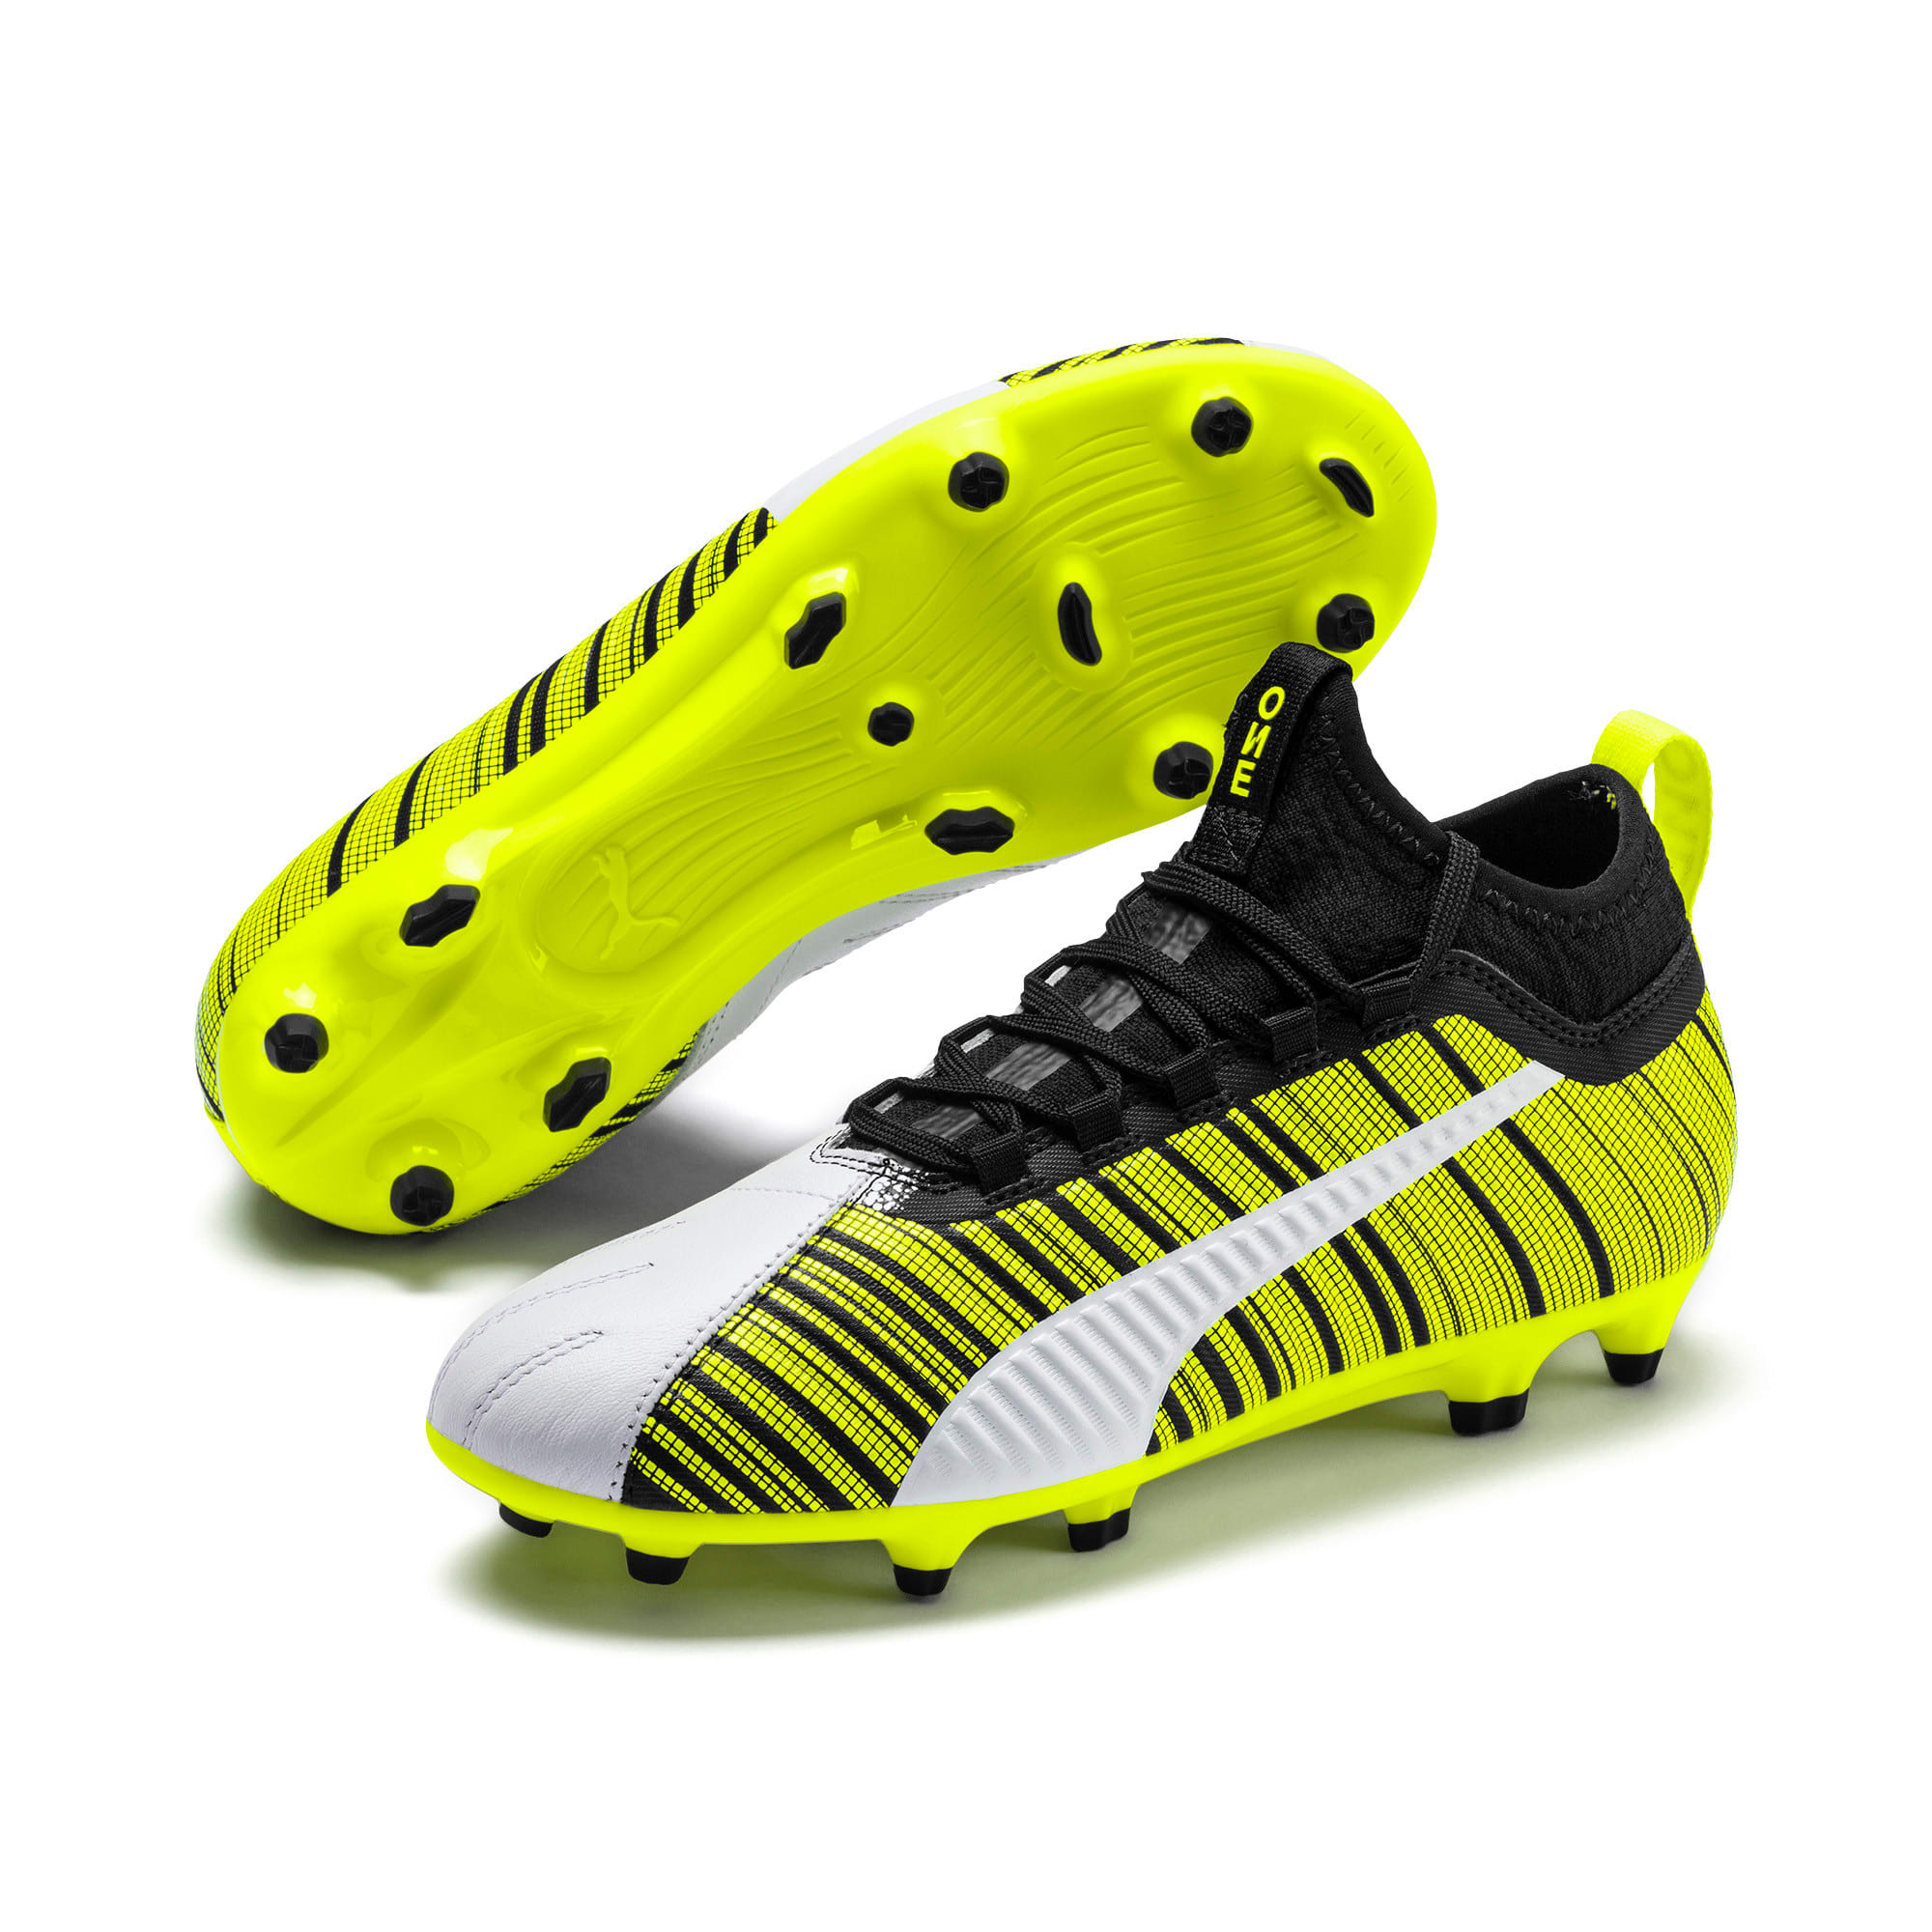 Thumbnail 2 of PUMA ONE 5.3 FG/AG Youth Fußballschuhe, White-Black-Yellow Alert, medium